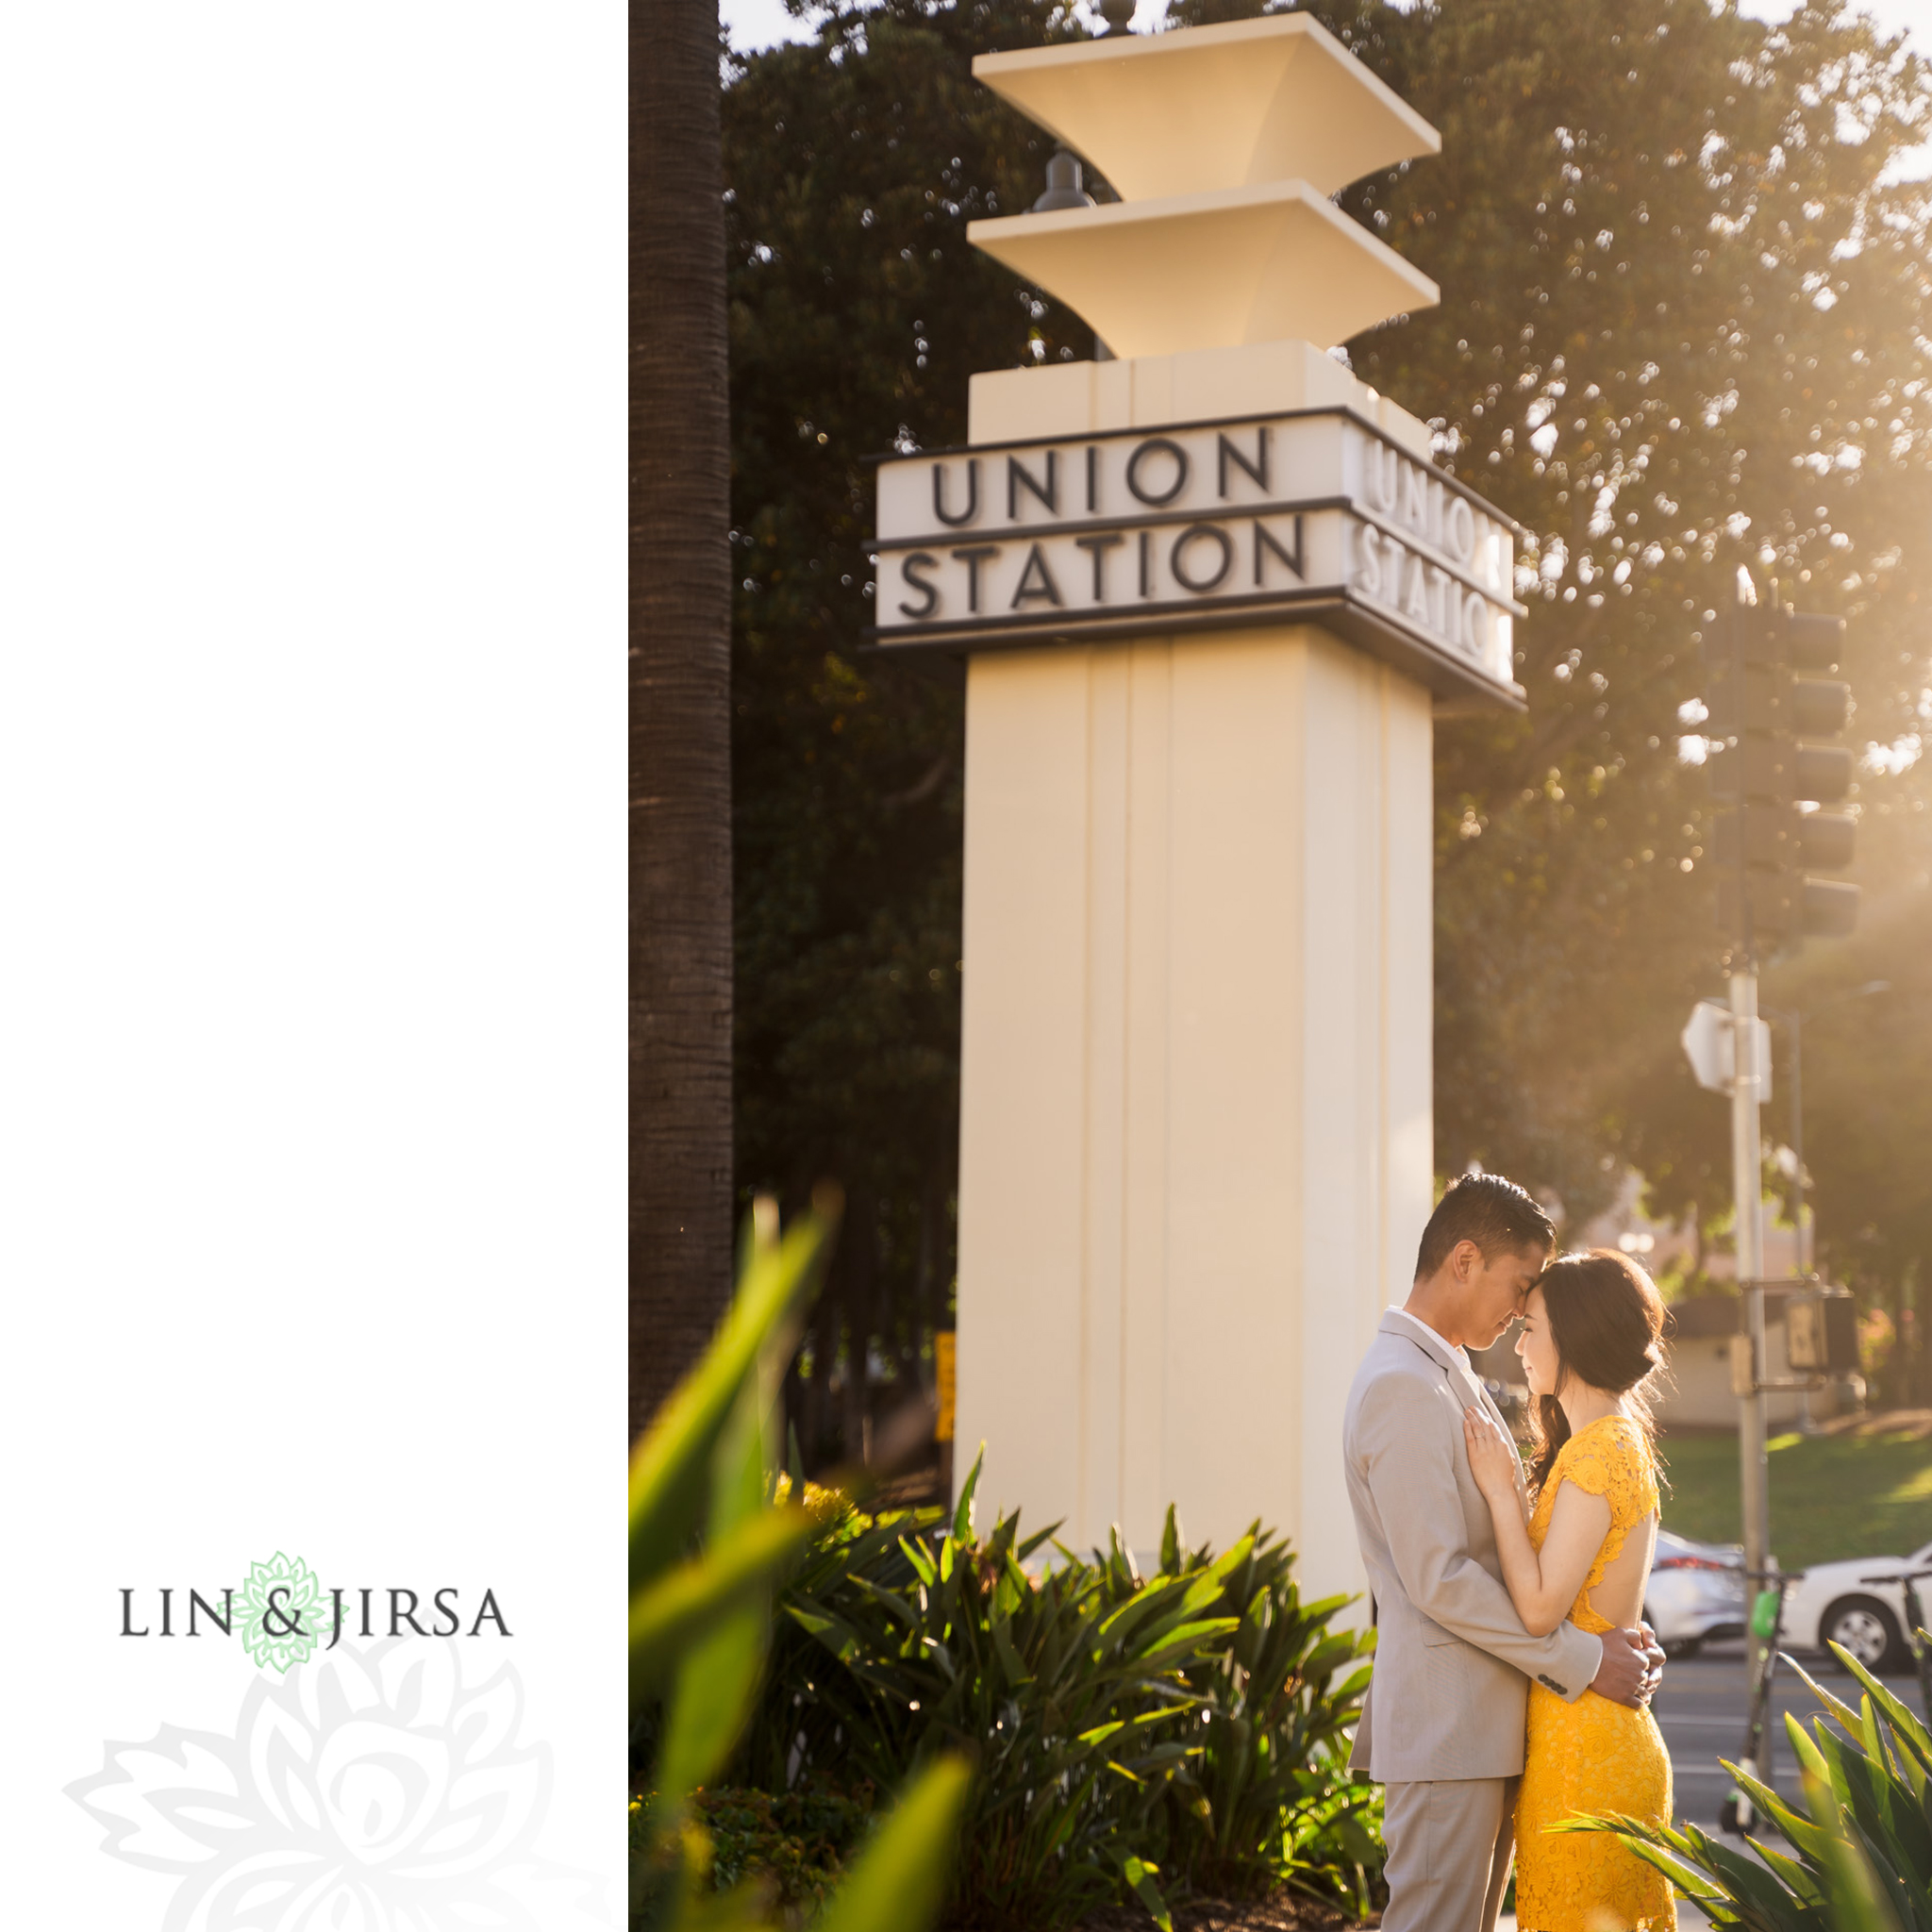 zjg Union Station Los Angeles Engagement Photography